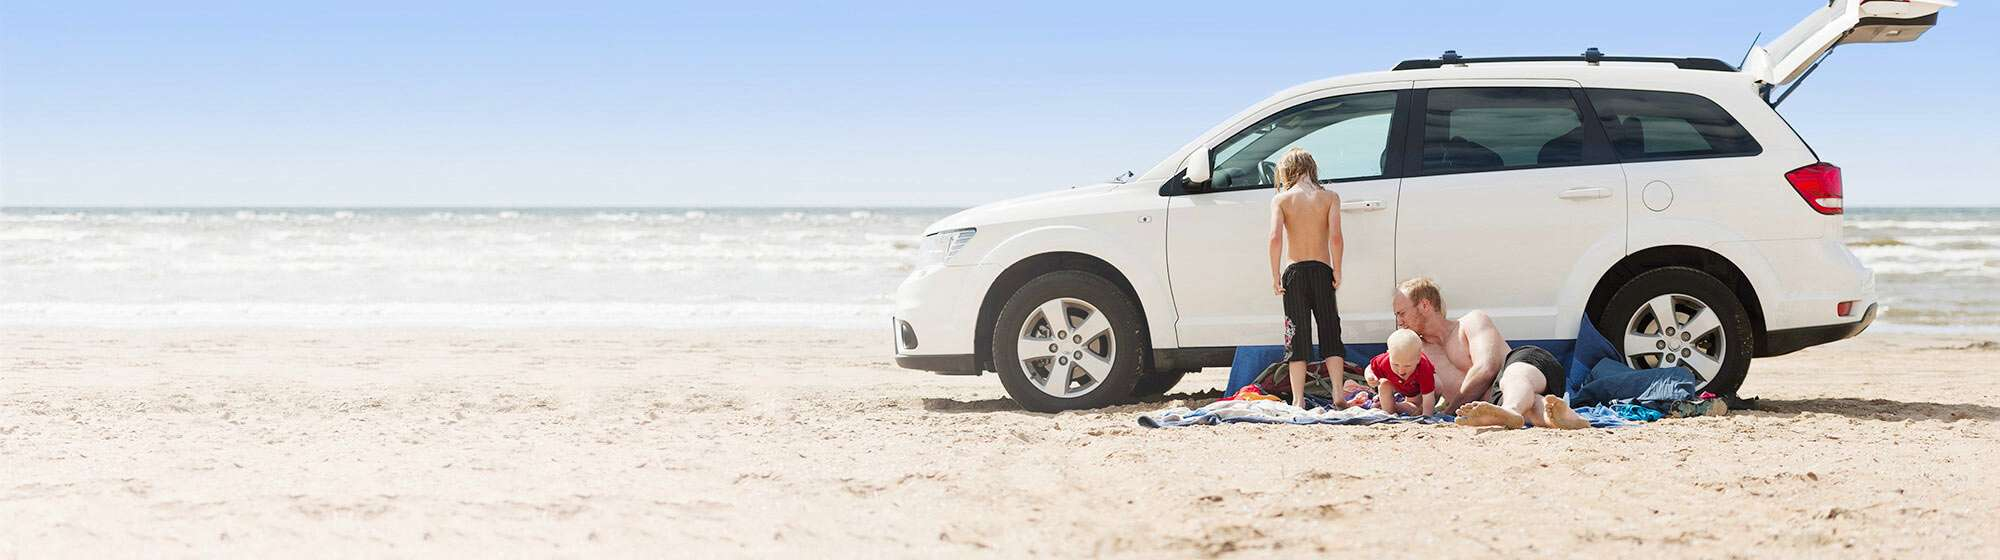 Sell your car online for free australia dating